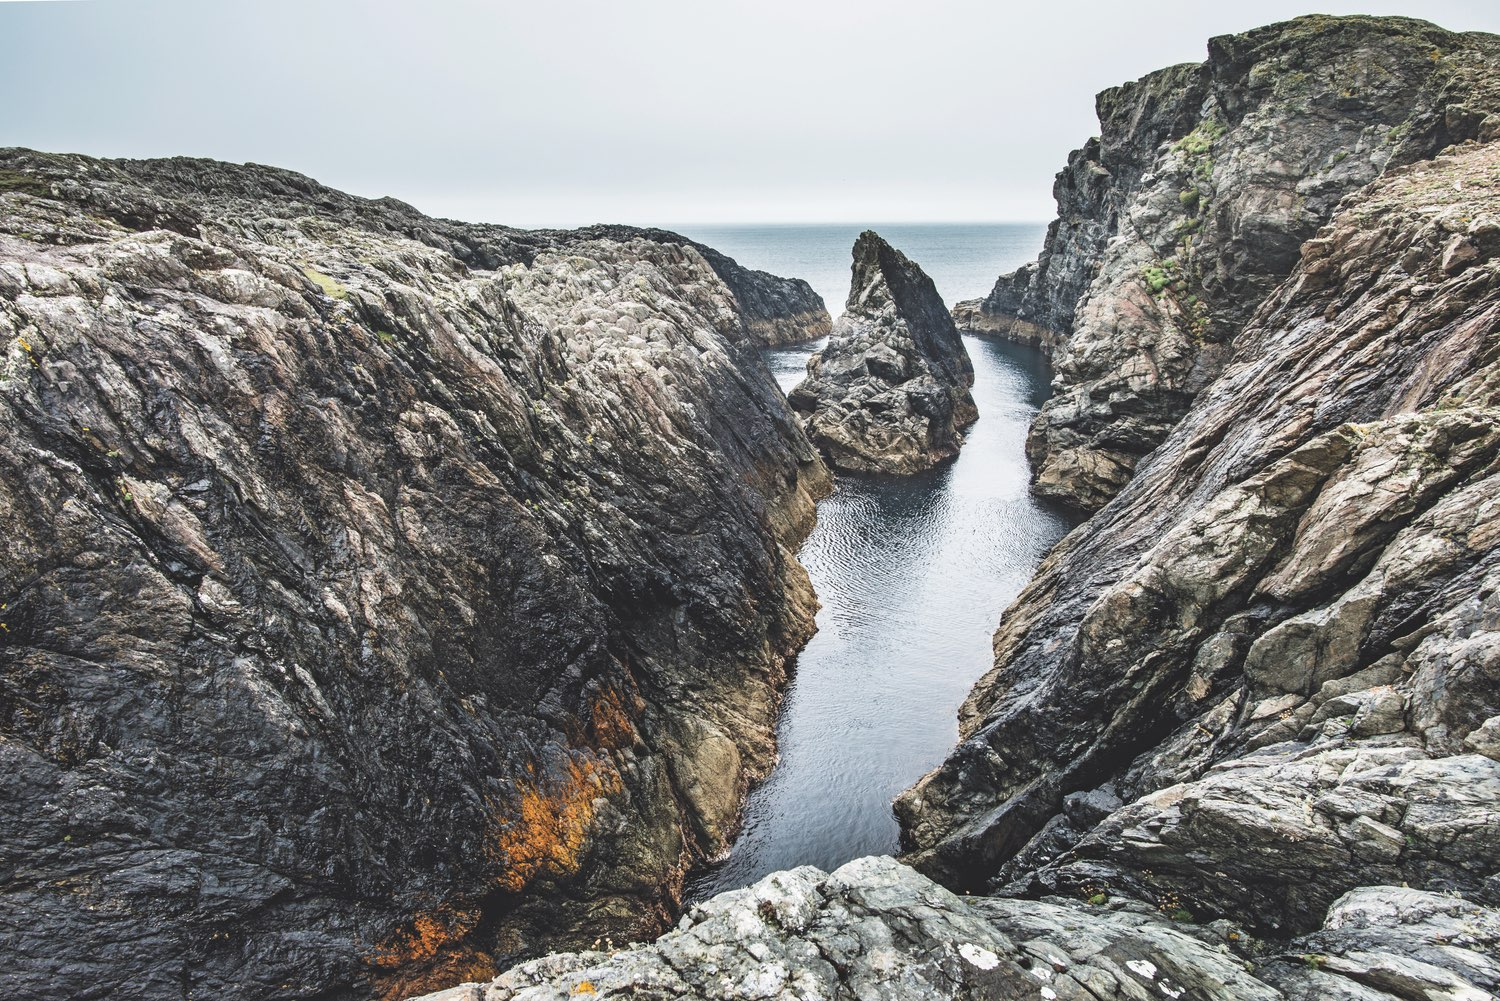 Dead Man's Cove, Inishbofin. Photo by Mark Furniss.